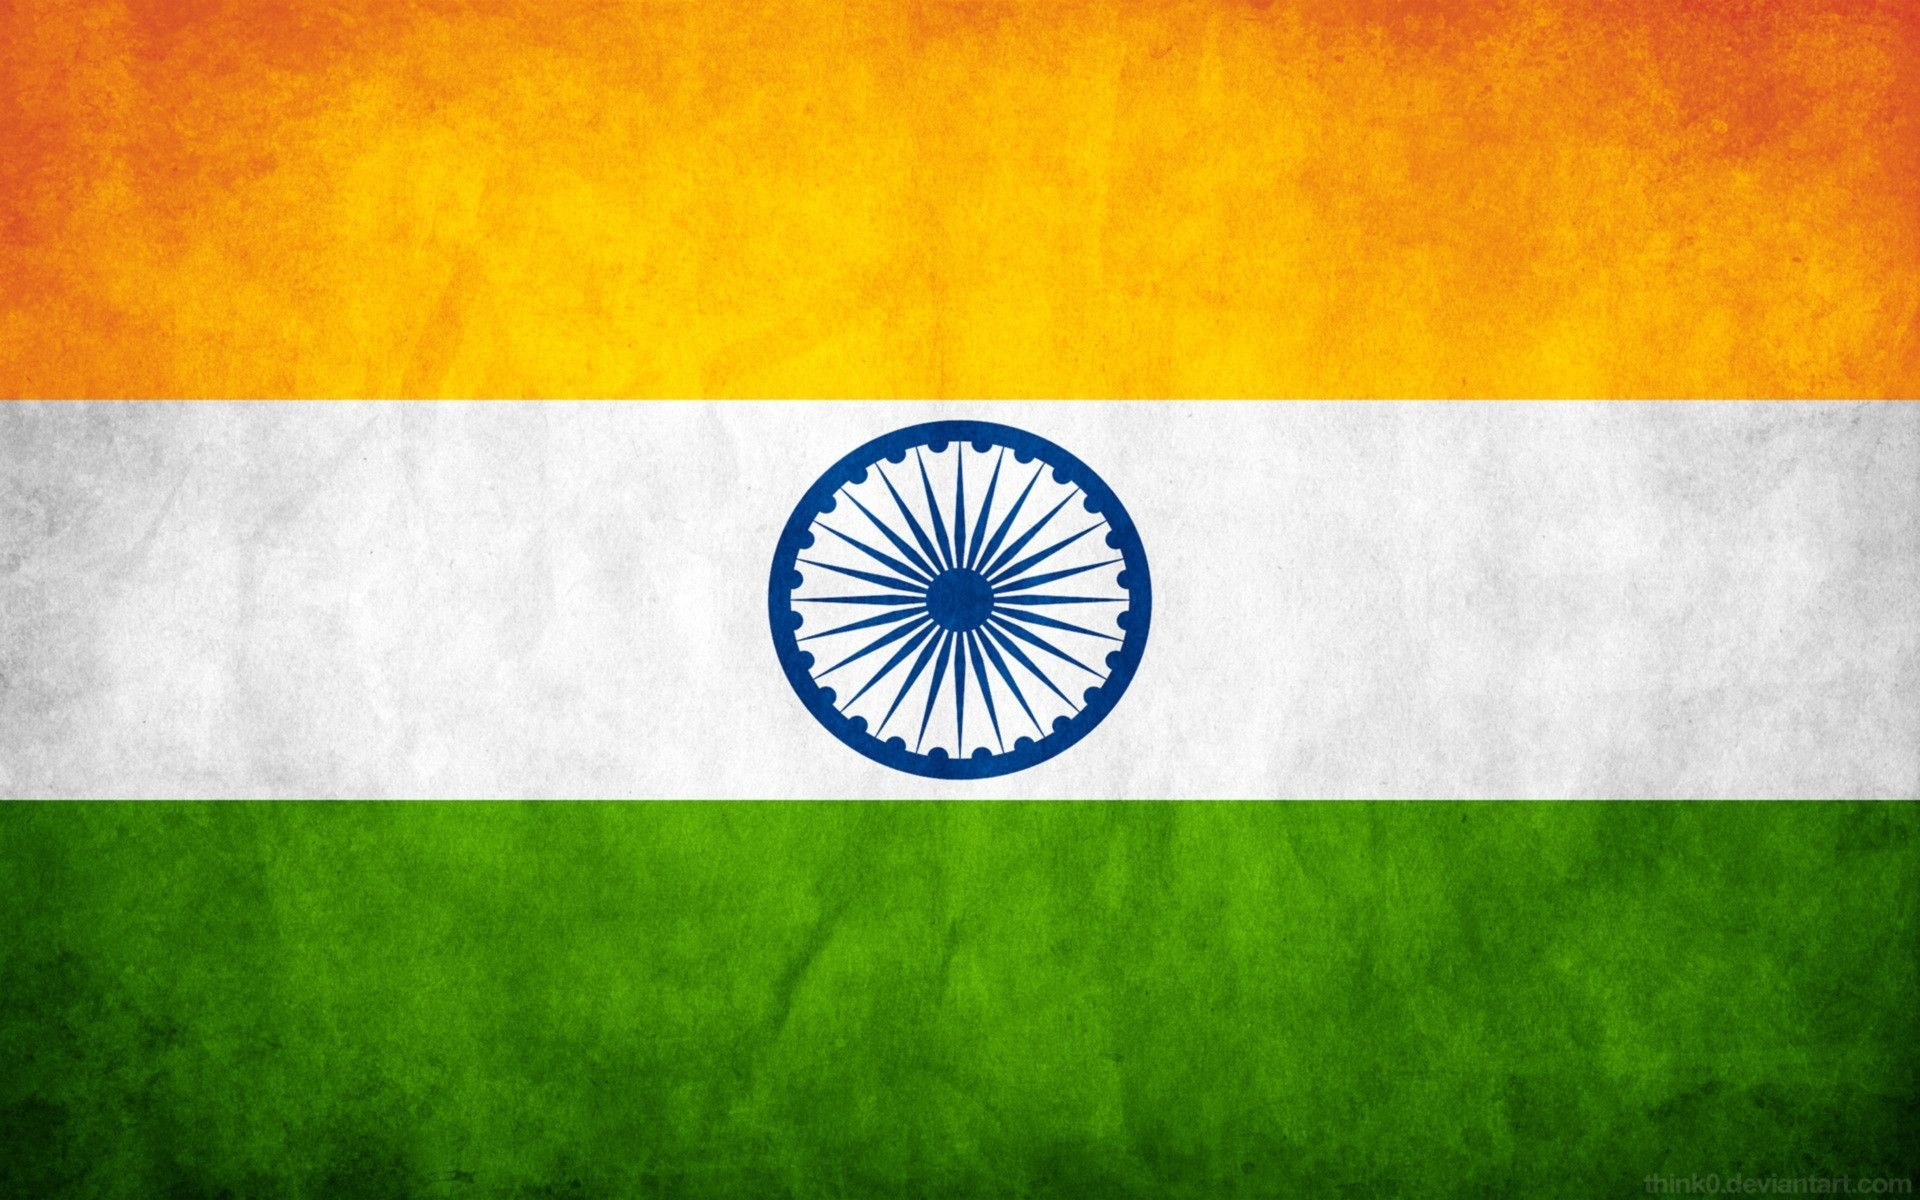 indian flag wallpaper high resolution hd – Google Search